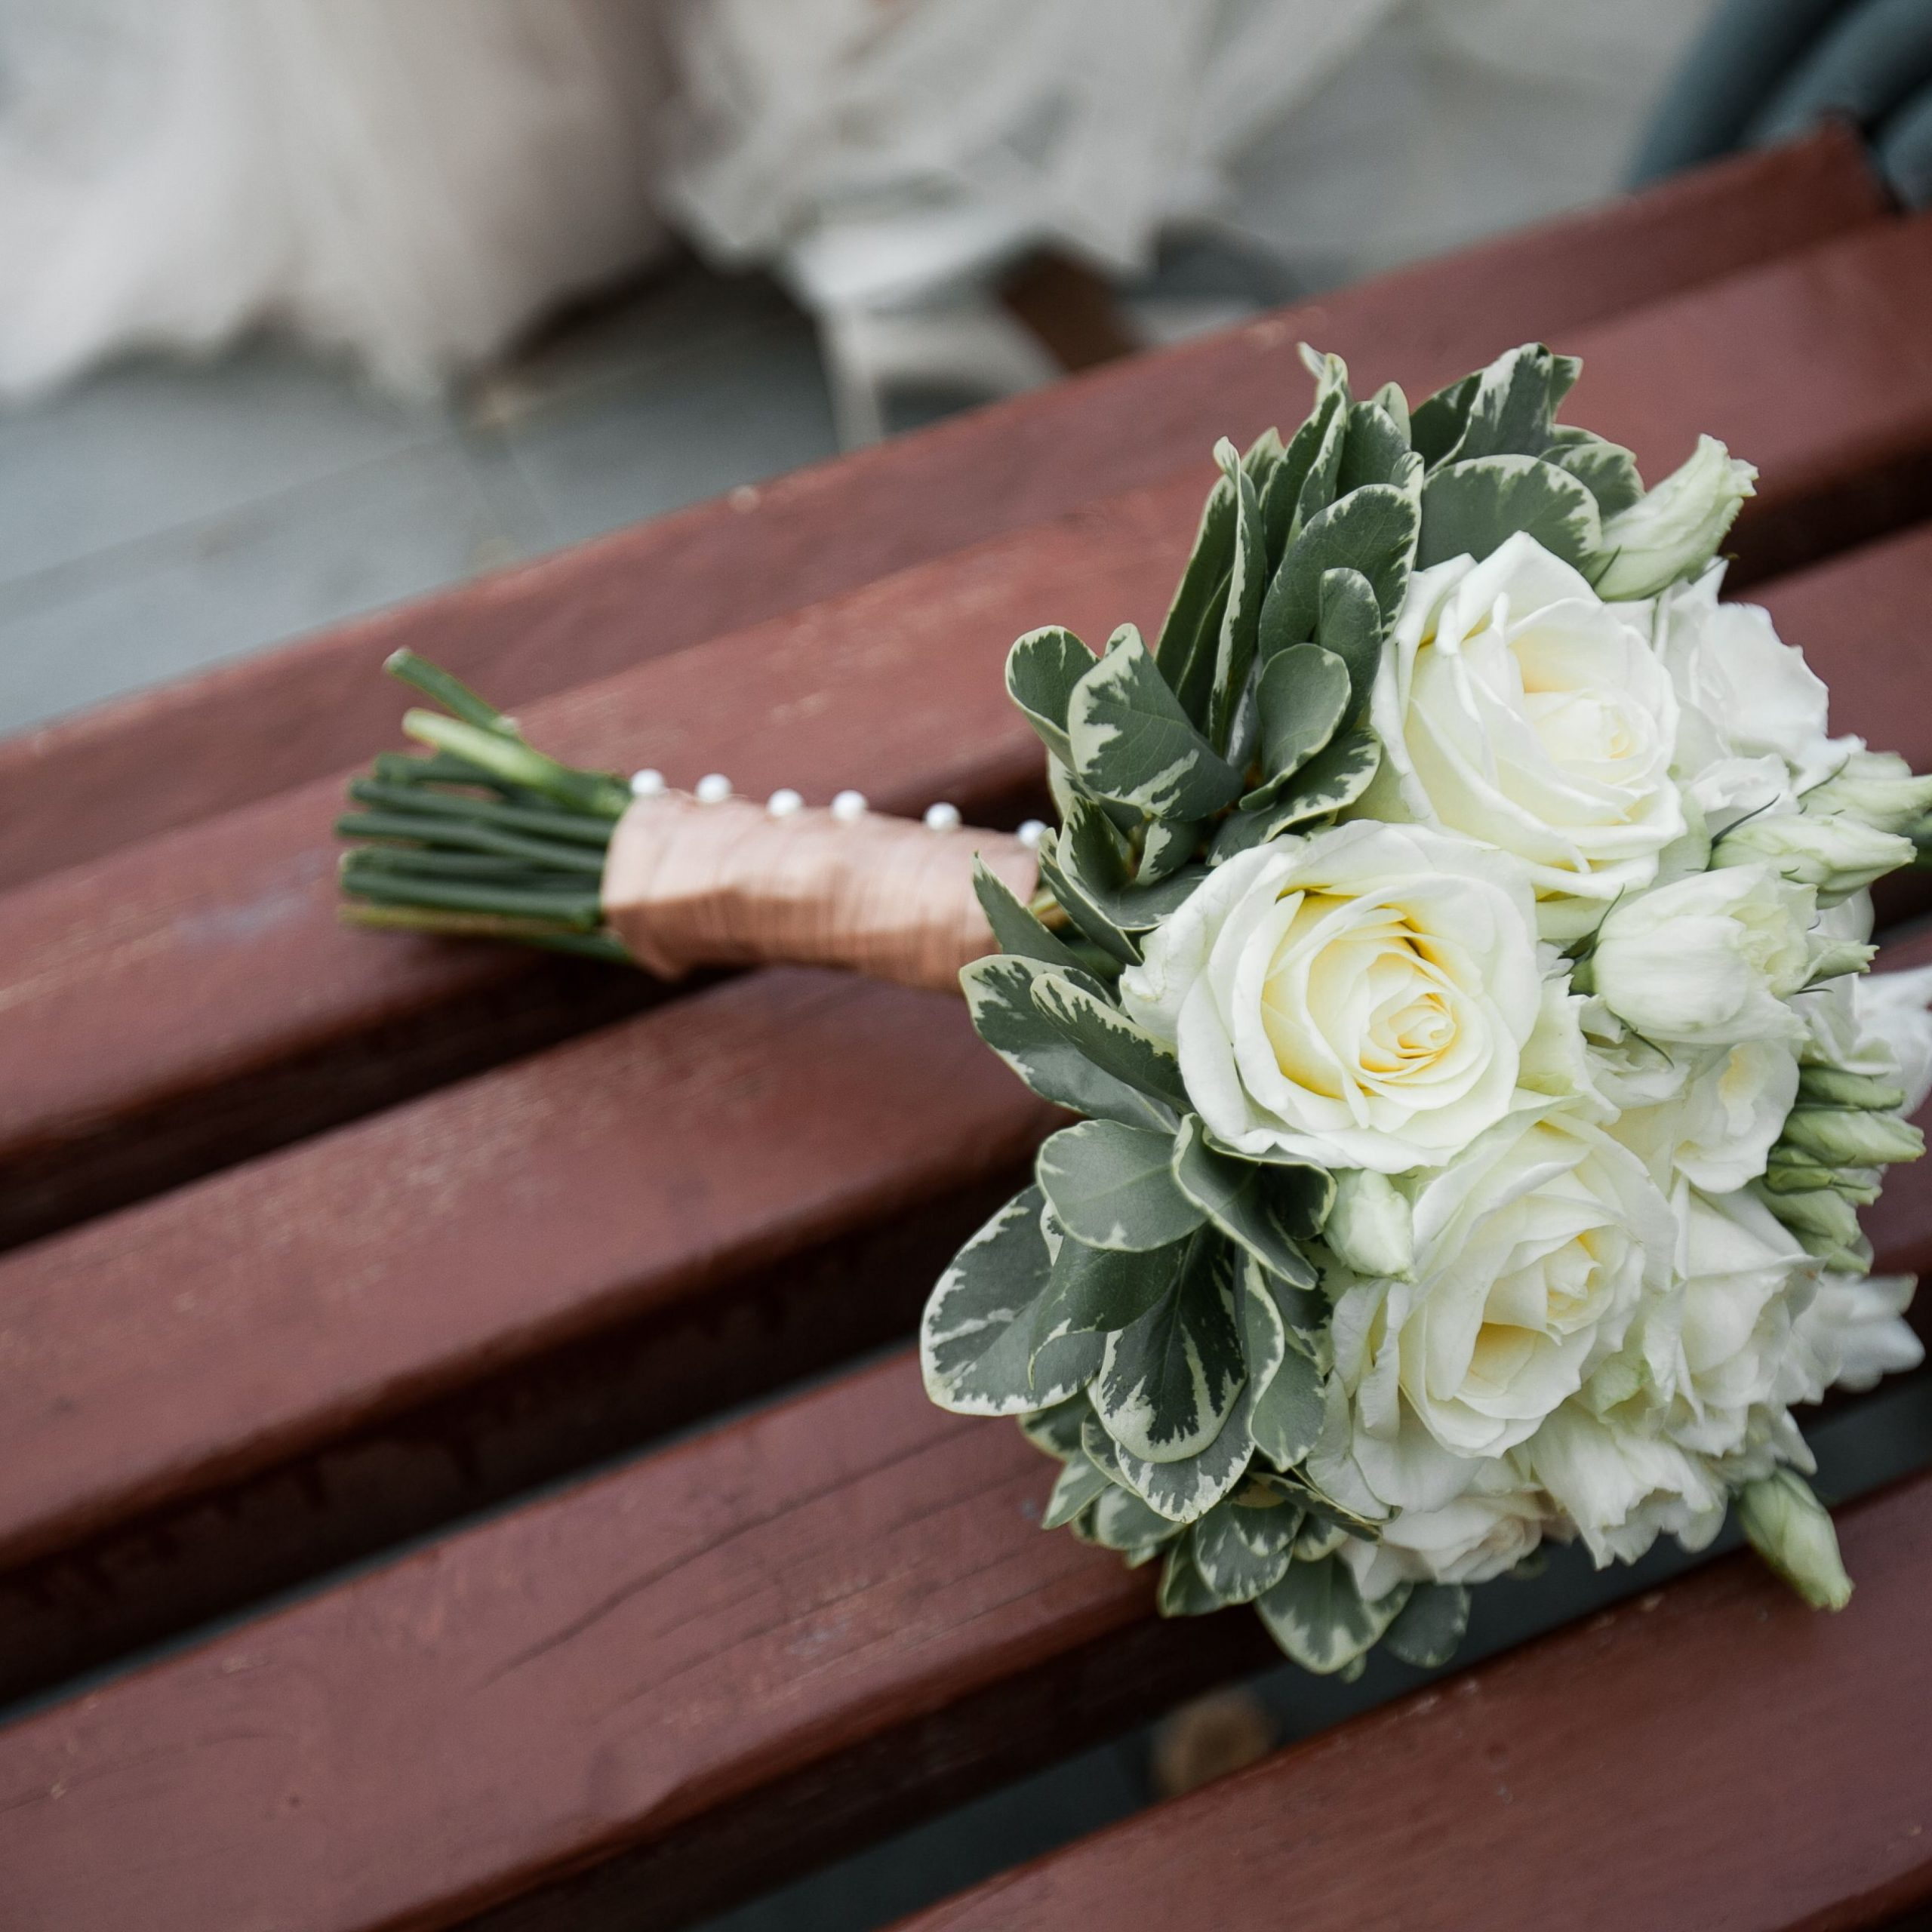 ideas to choose the beauty and elegance of white and purple wedding flowers 3 scaled - Ideas to Choose the Beauty and Elegance of White and Purple Wedding Flowers